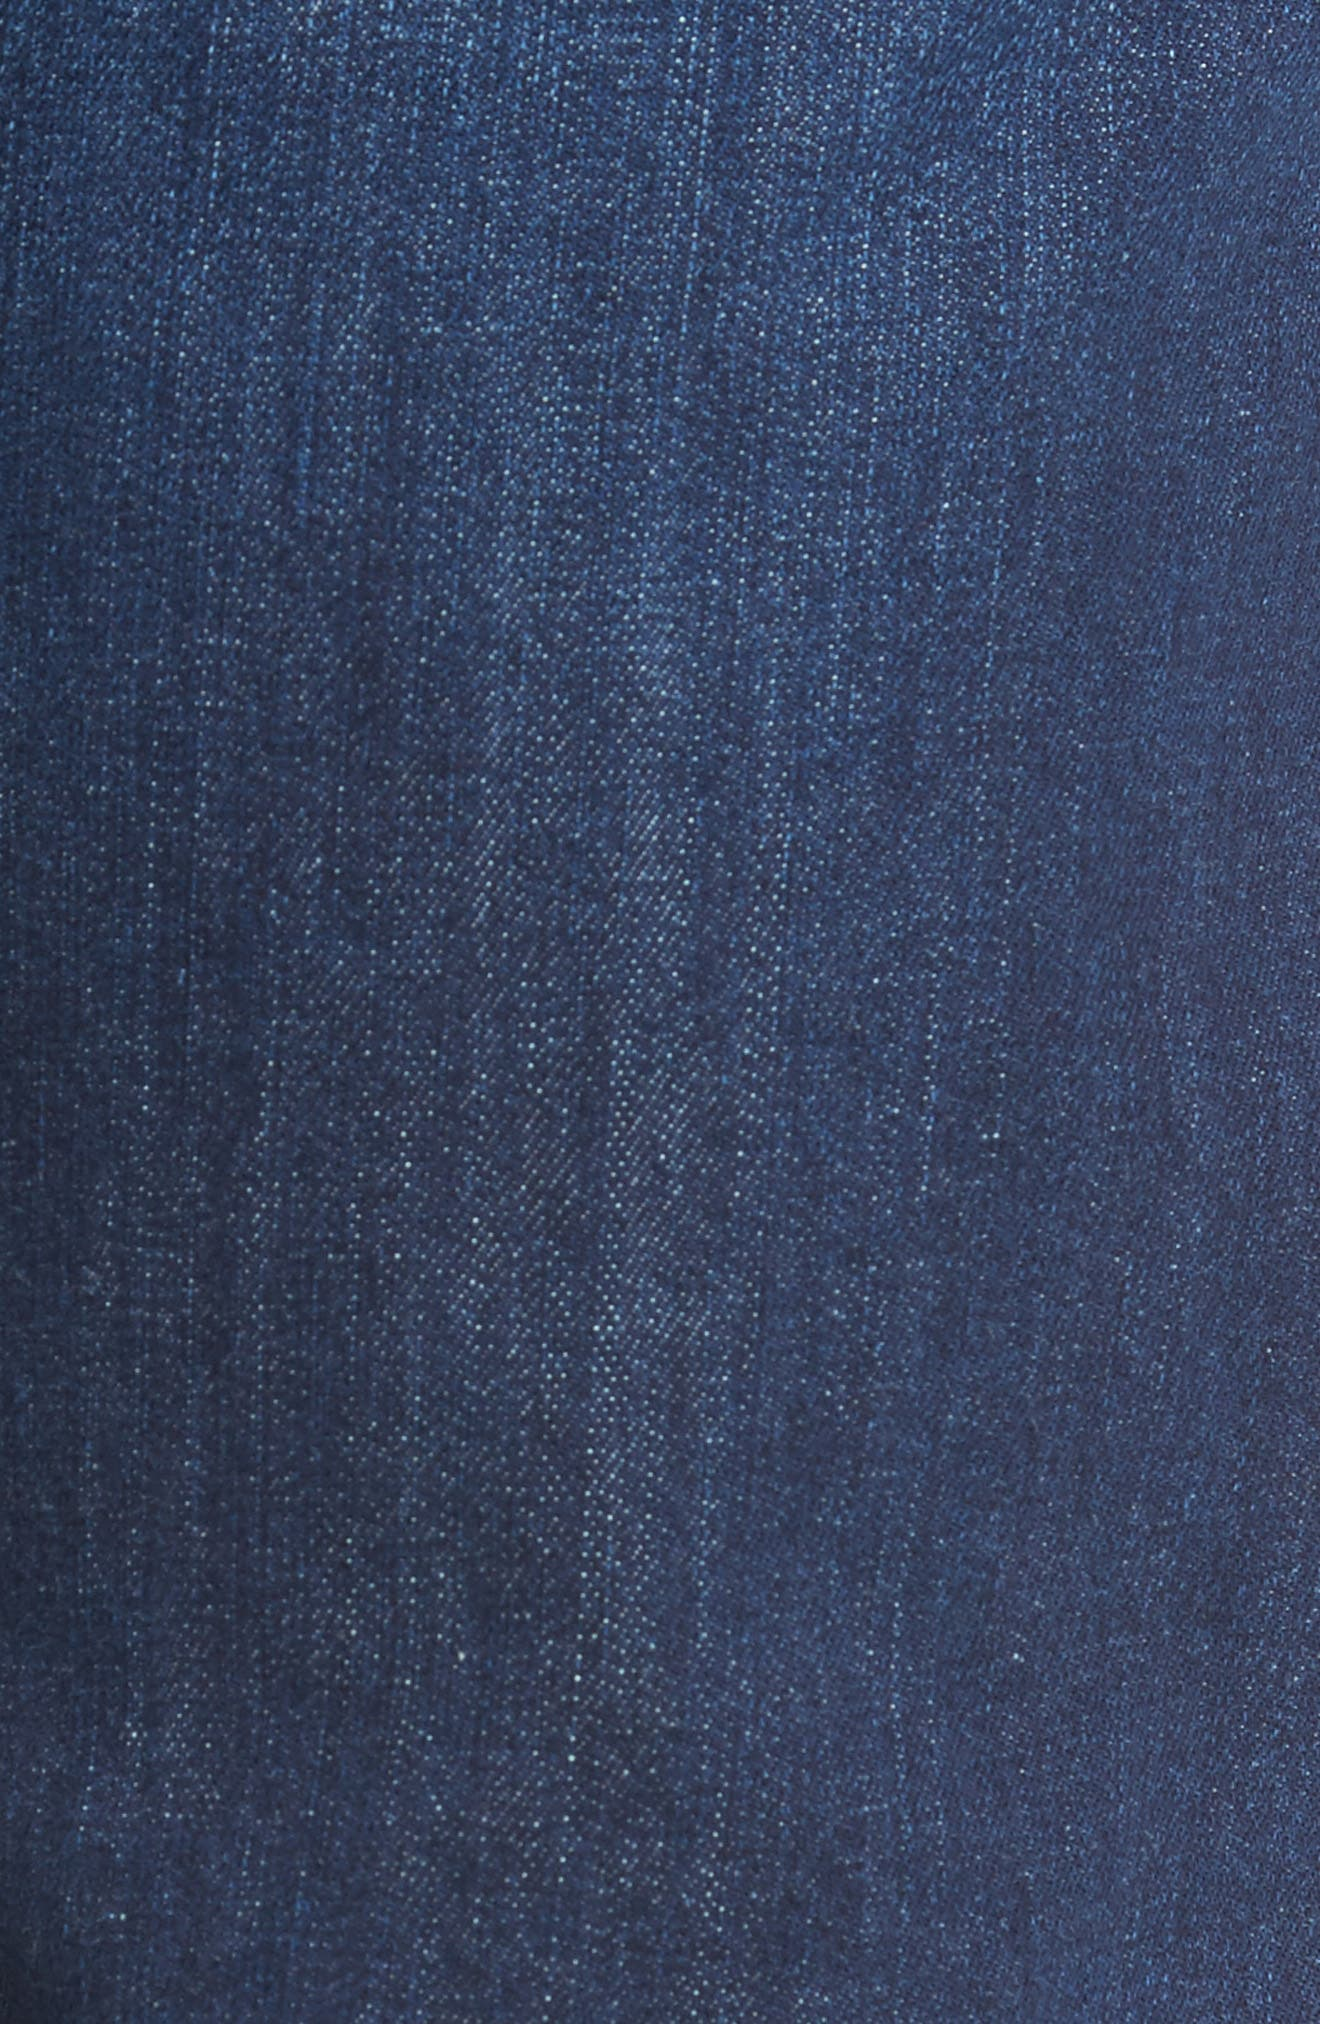 Larkee Relaxed Fit Jeans,                             Alternate thumbnail 5, color,